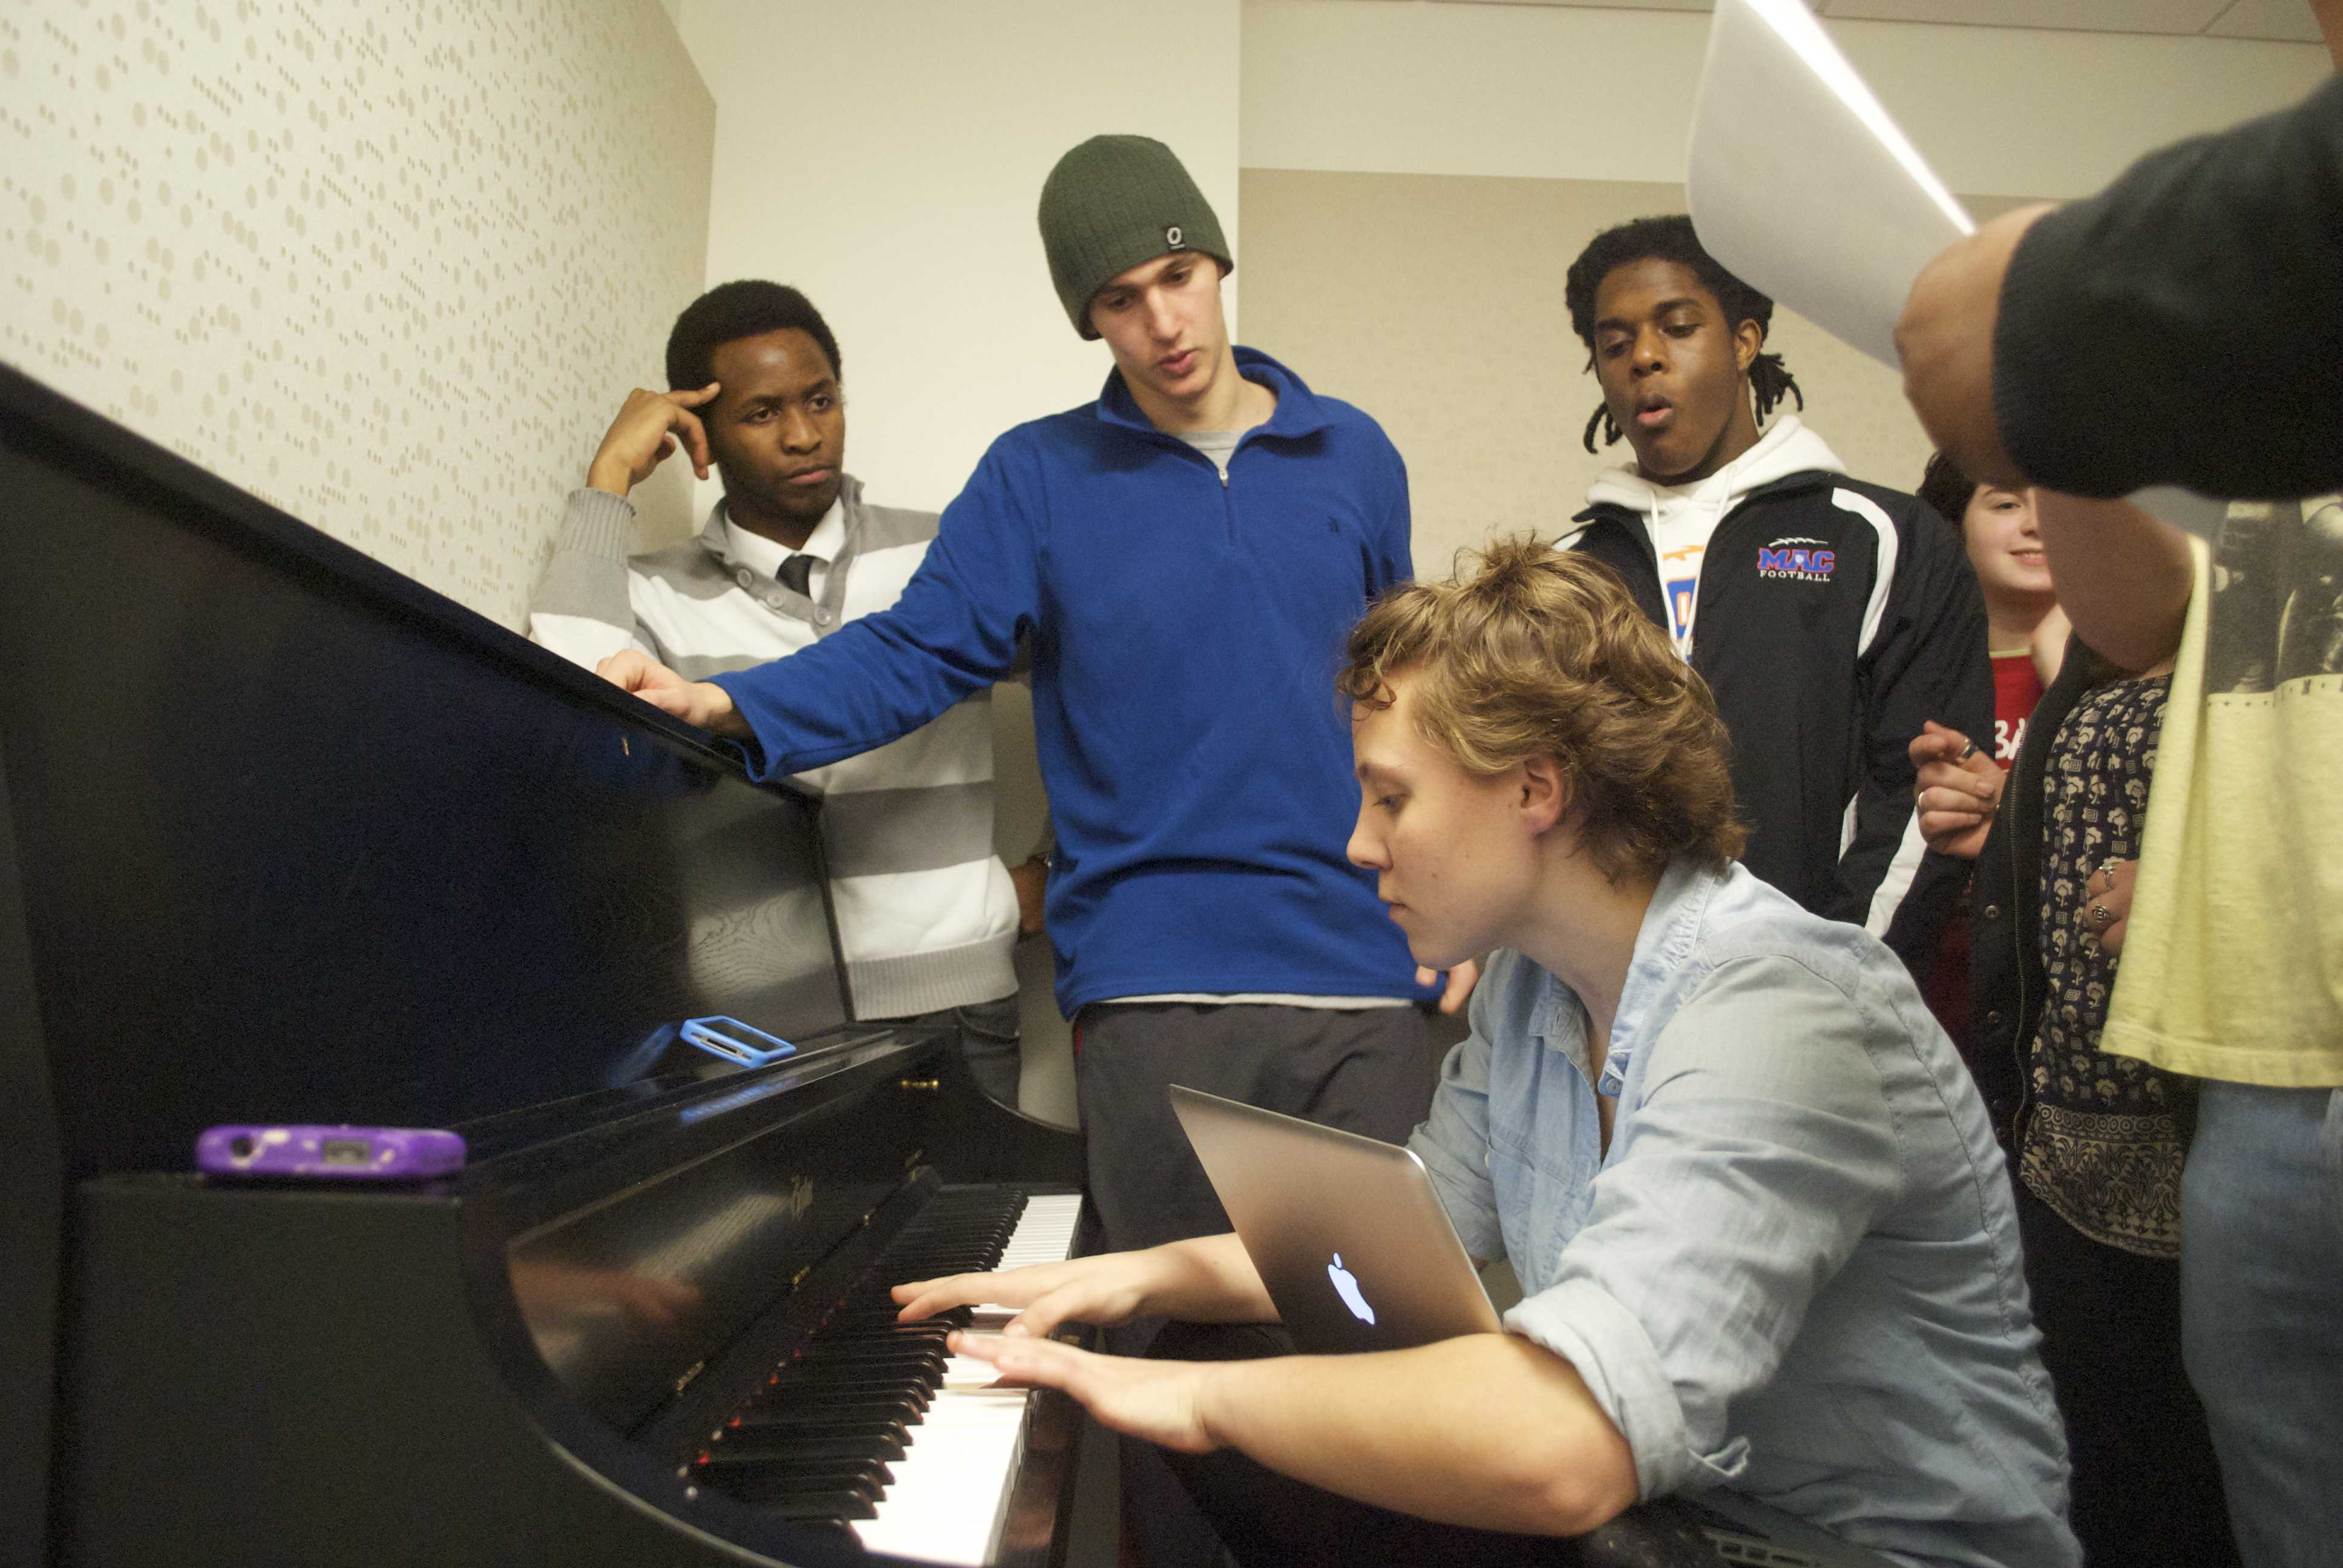 Chromactics members Peace Madimutsa, Ben Haltmaier and Hannah Field work on their R&B arrangements. The Chromactics are Macalester's fifth a cappella organization, and formed earlier this year. Photo by Joe Bermas-Dawes '17.